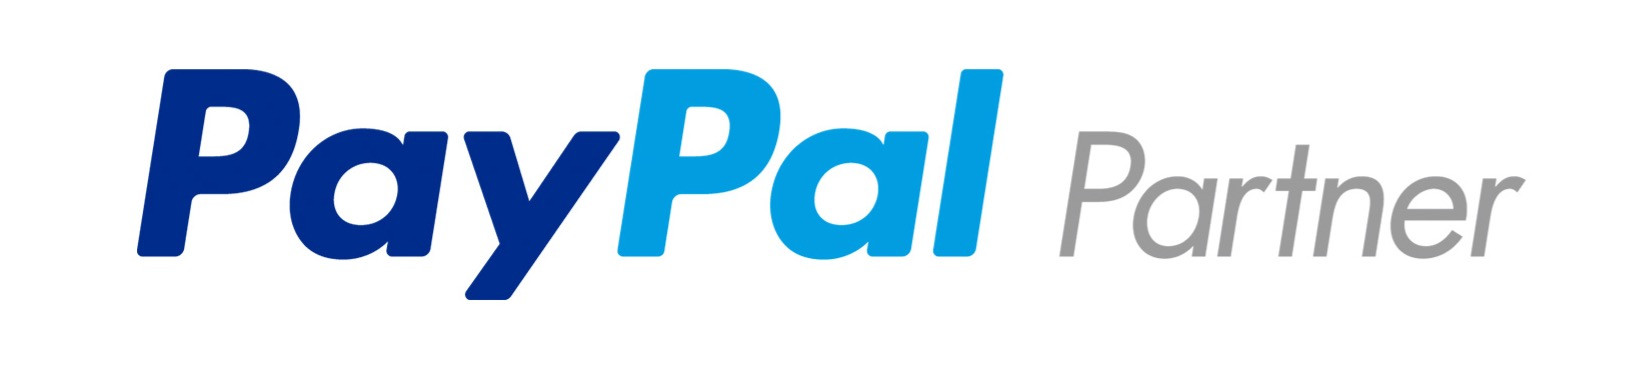 Paypal-Partner_edited.jpg